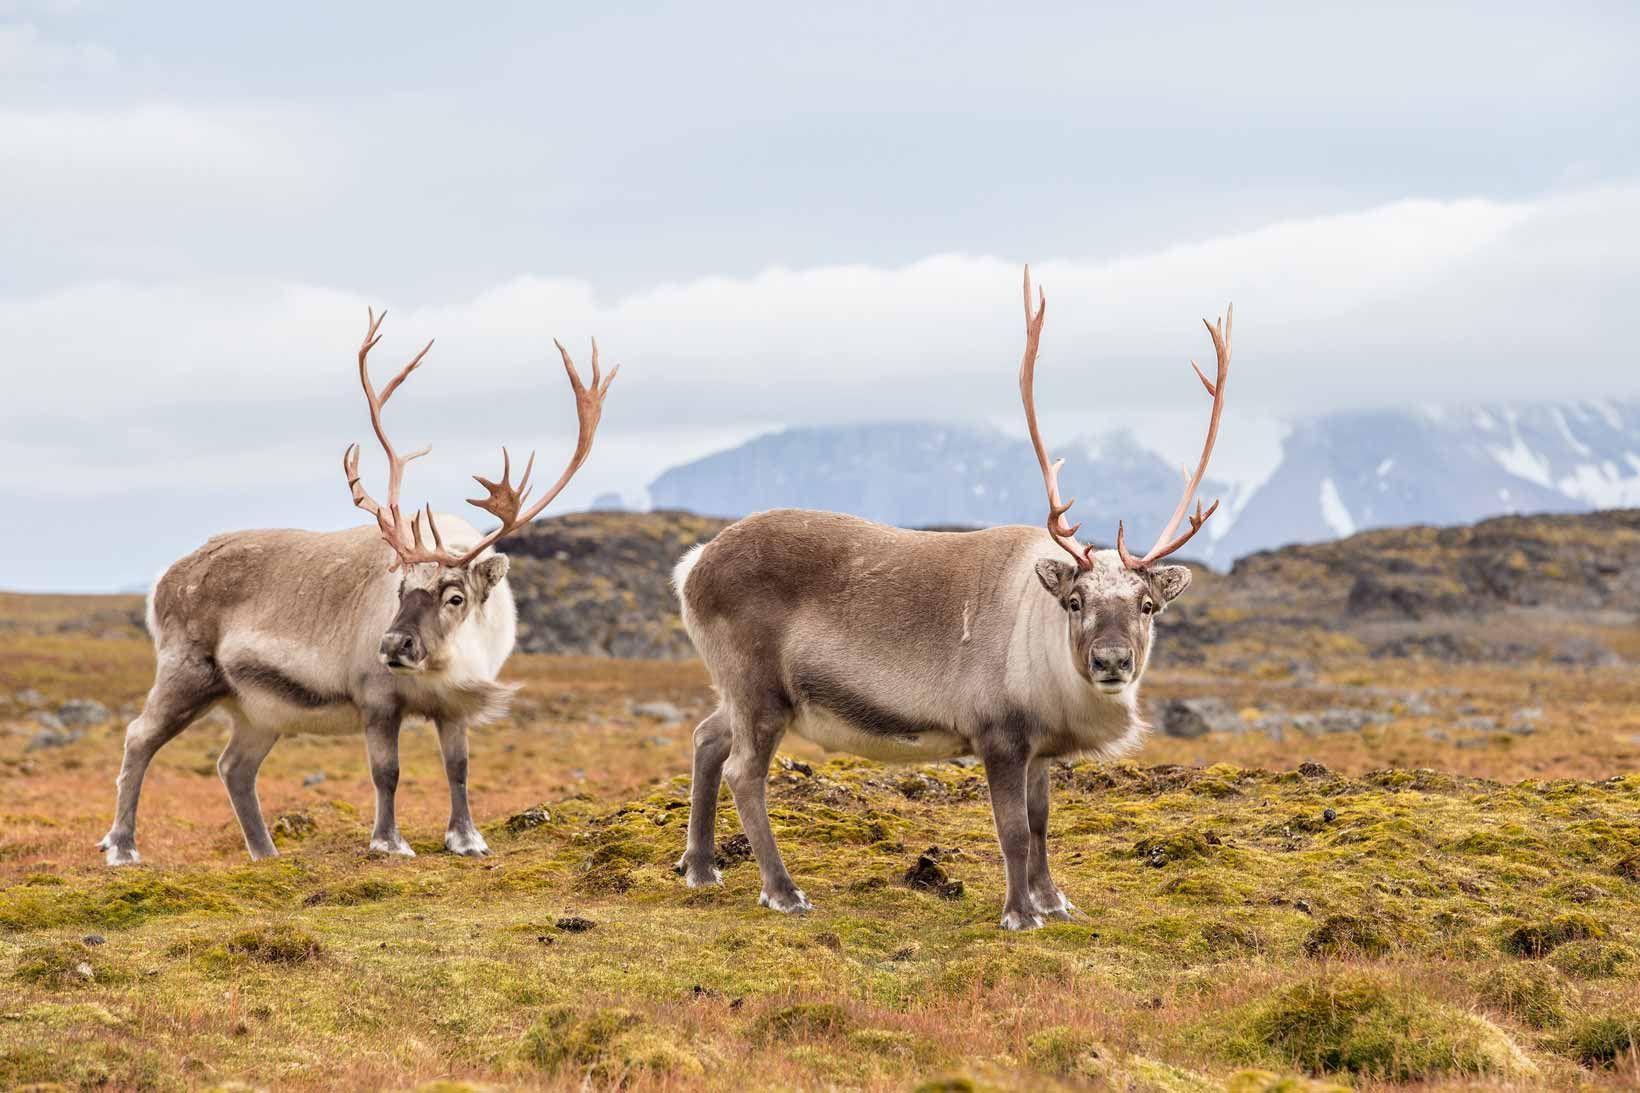 Reindeer in natural habitat